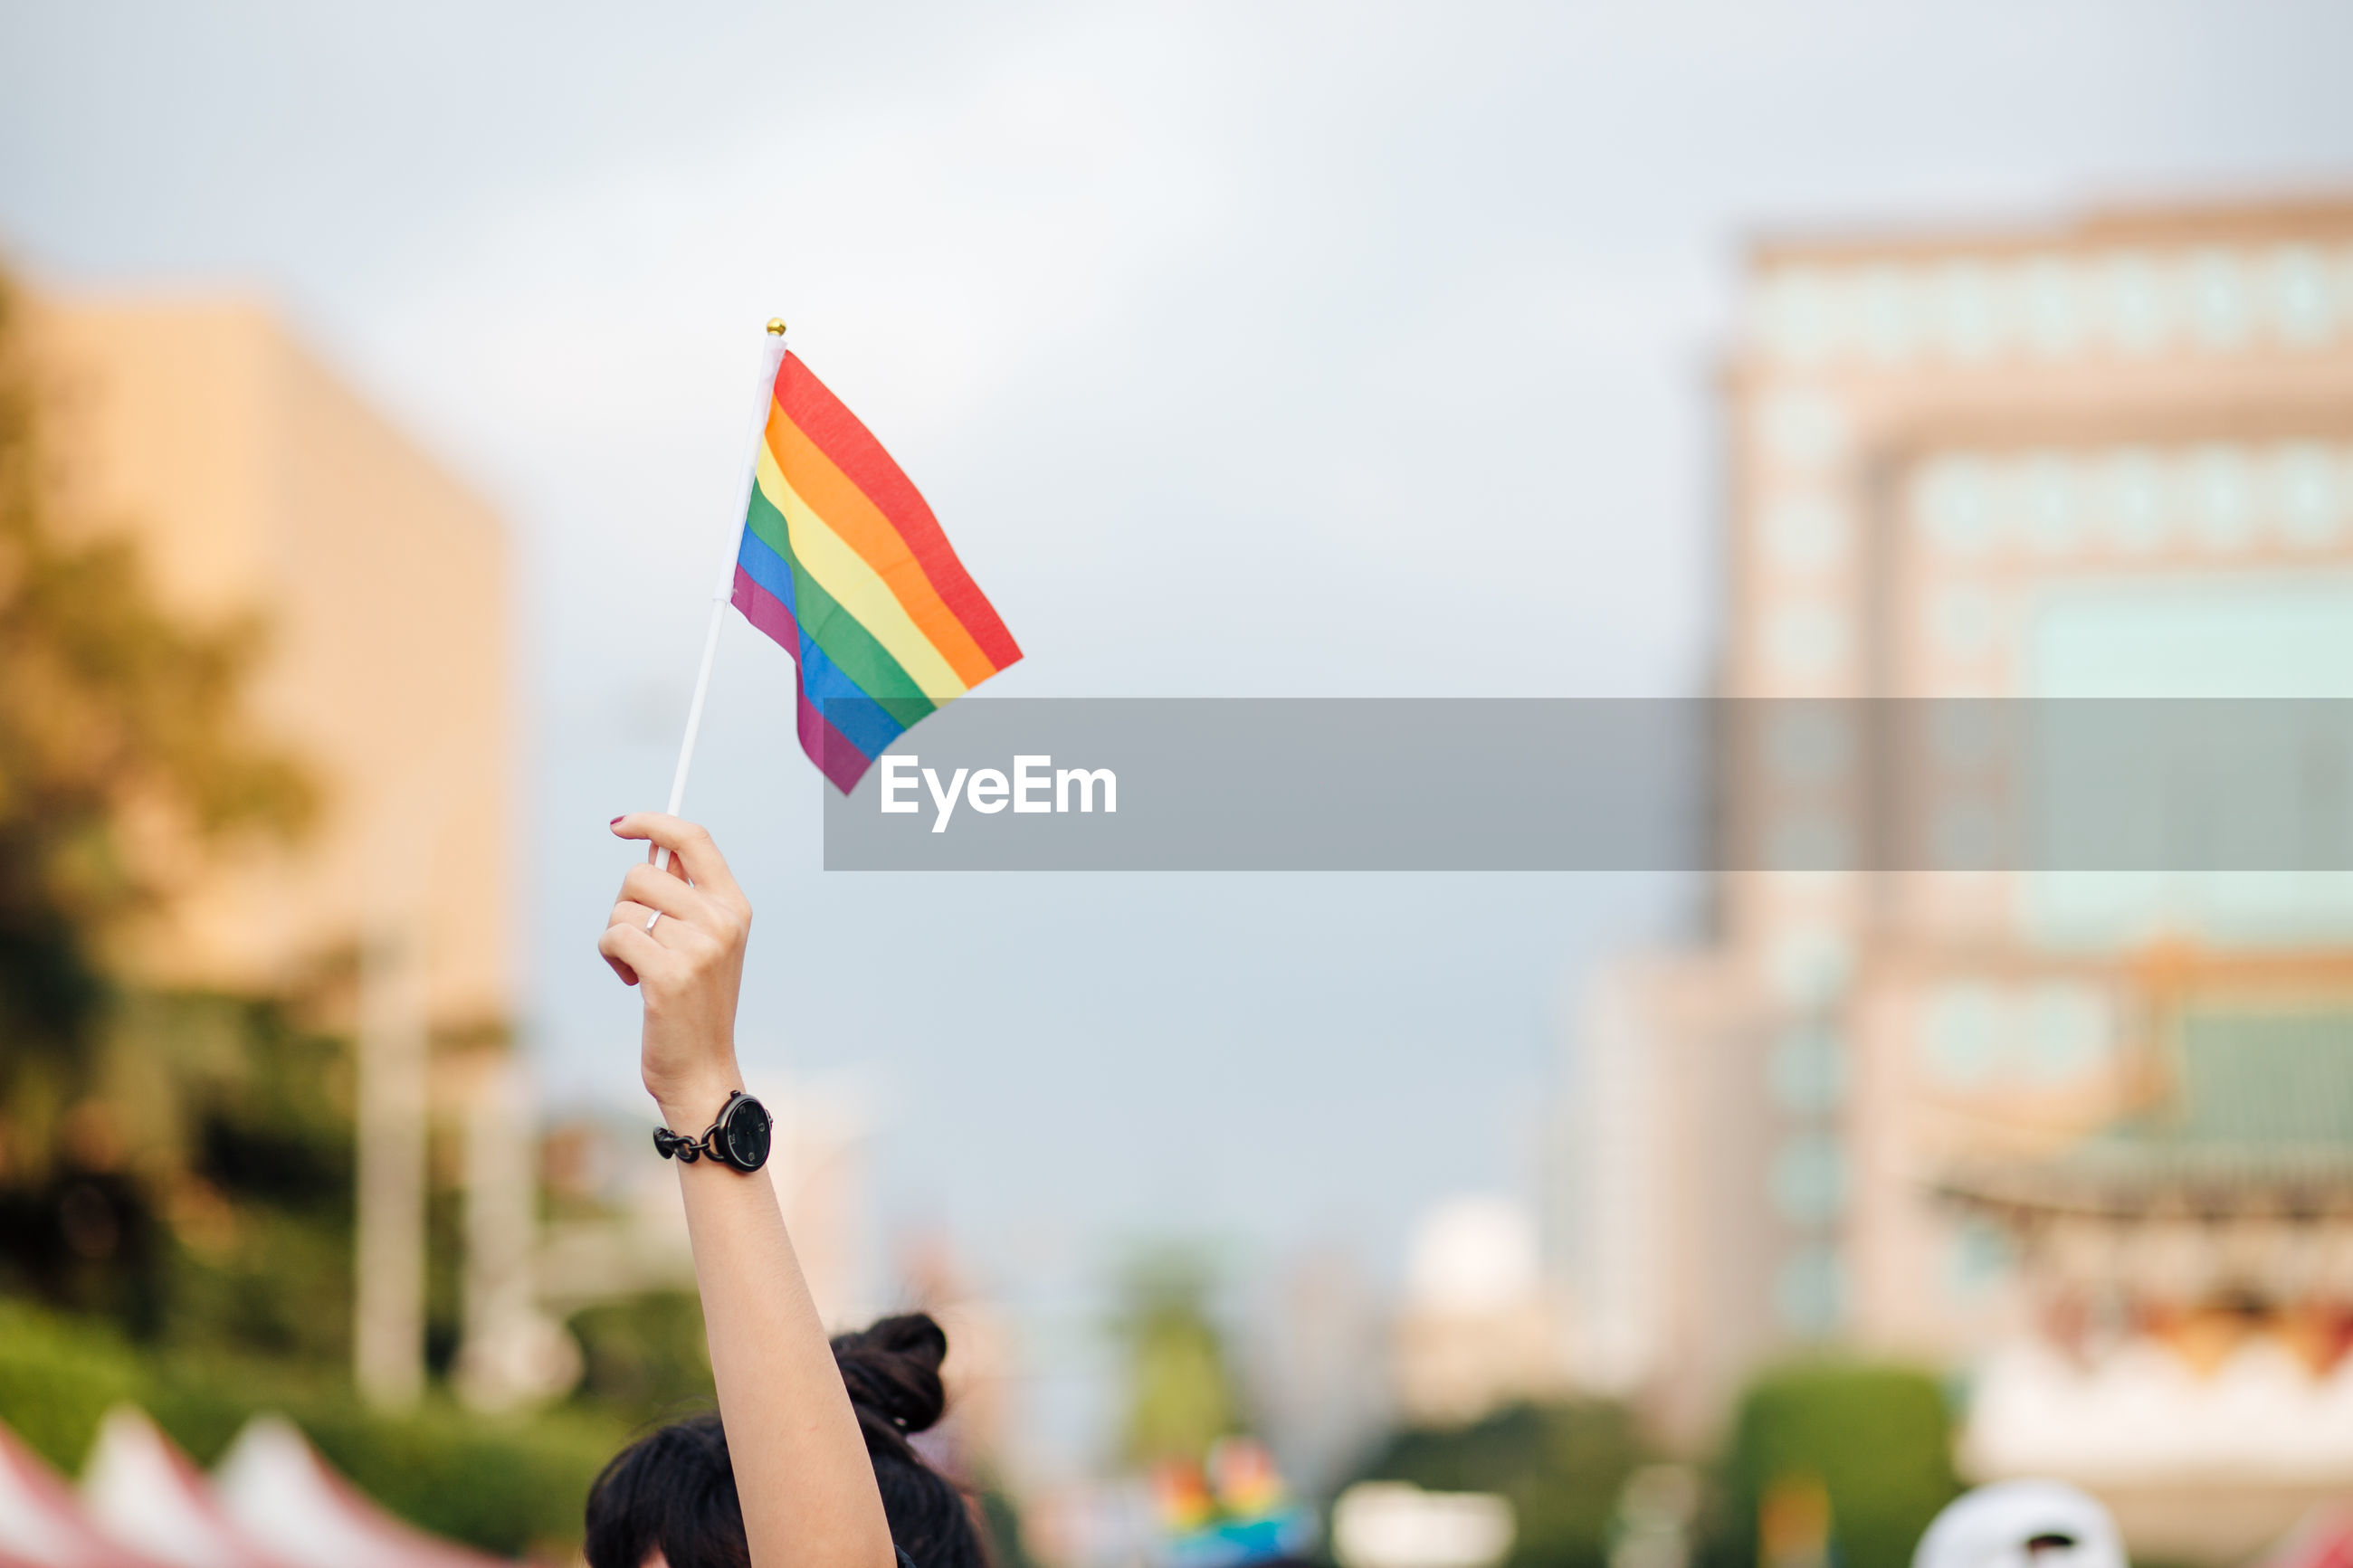 Cropped hand of woman holding rainbow flag against buildings